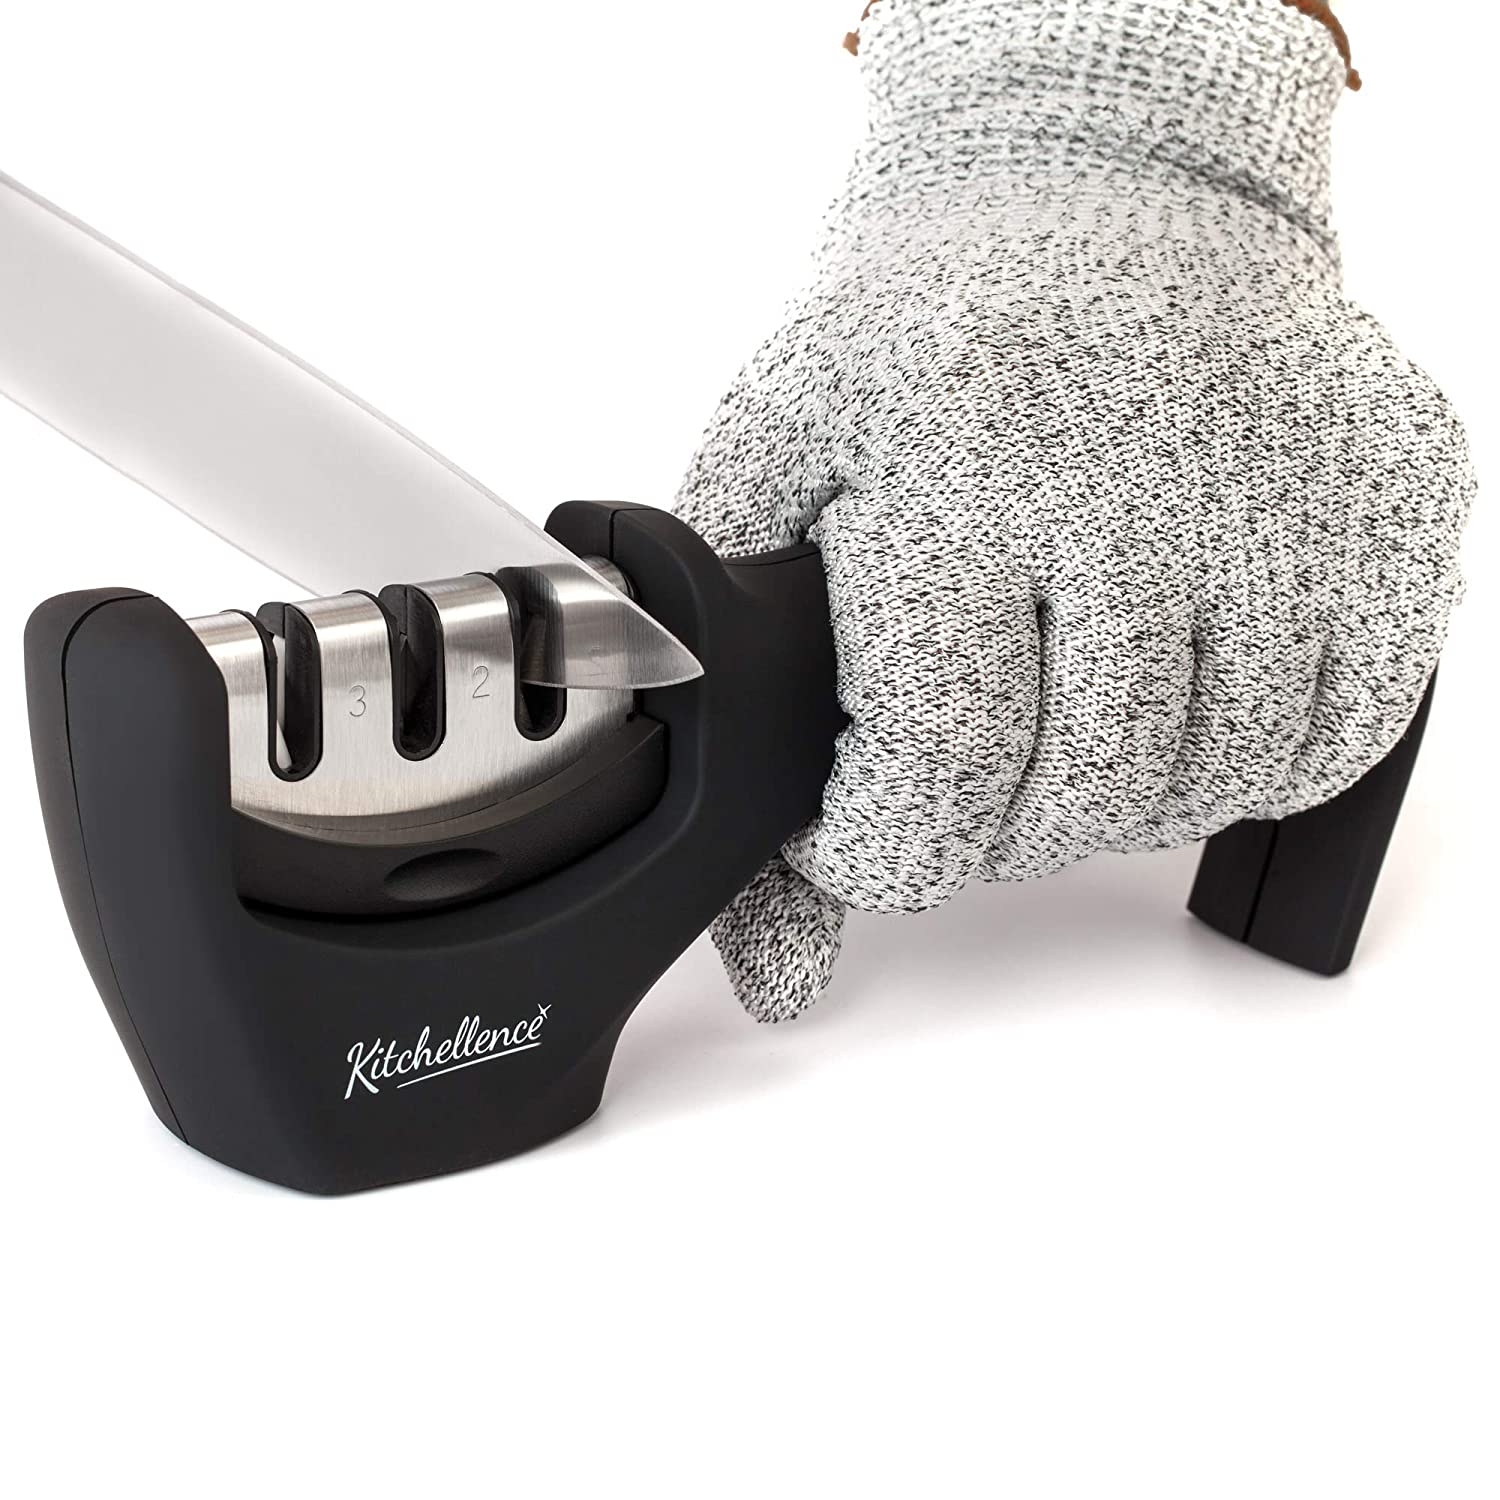 Kitchen Knife Sharpener - 3-Stage Knife Sharpening Tool Helps Repair, Restore and Polish Blades - Cut-Resistant Glove Included (Black)